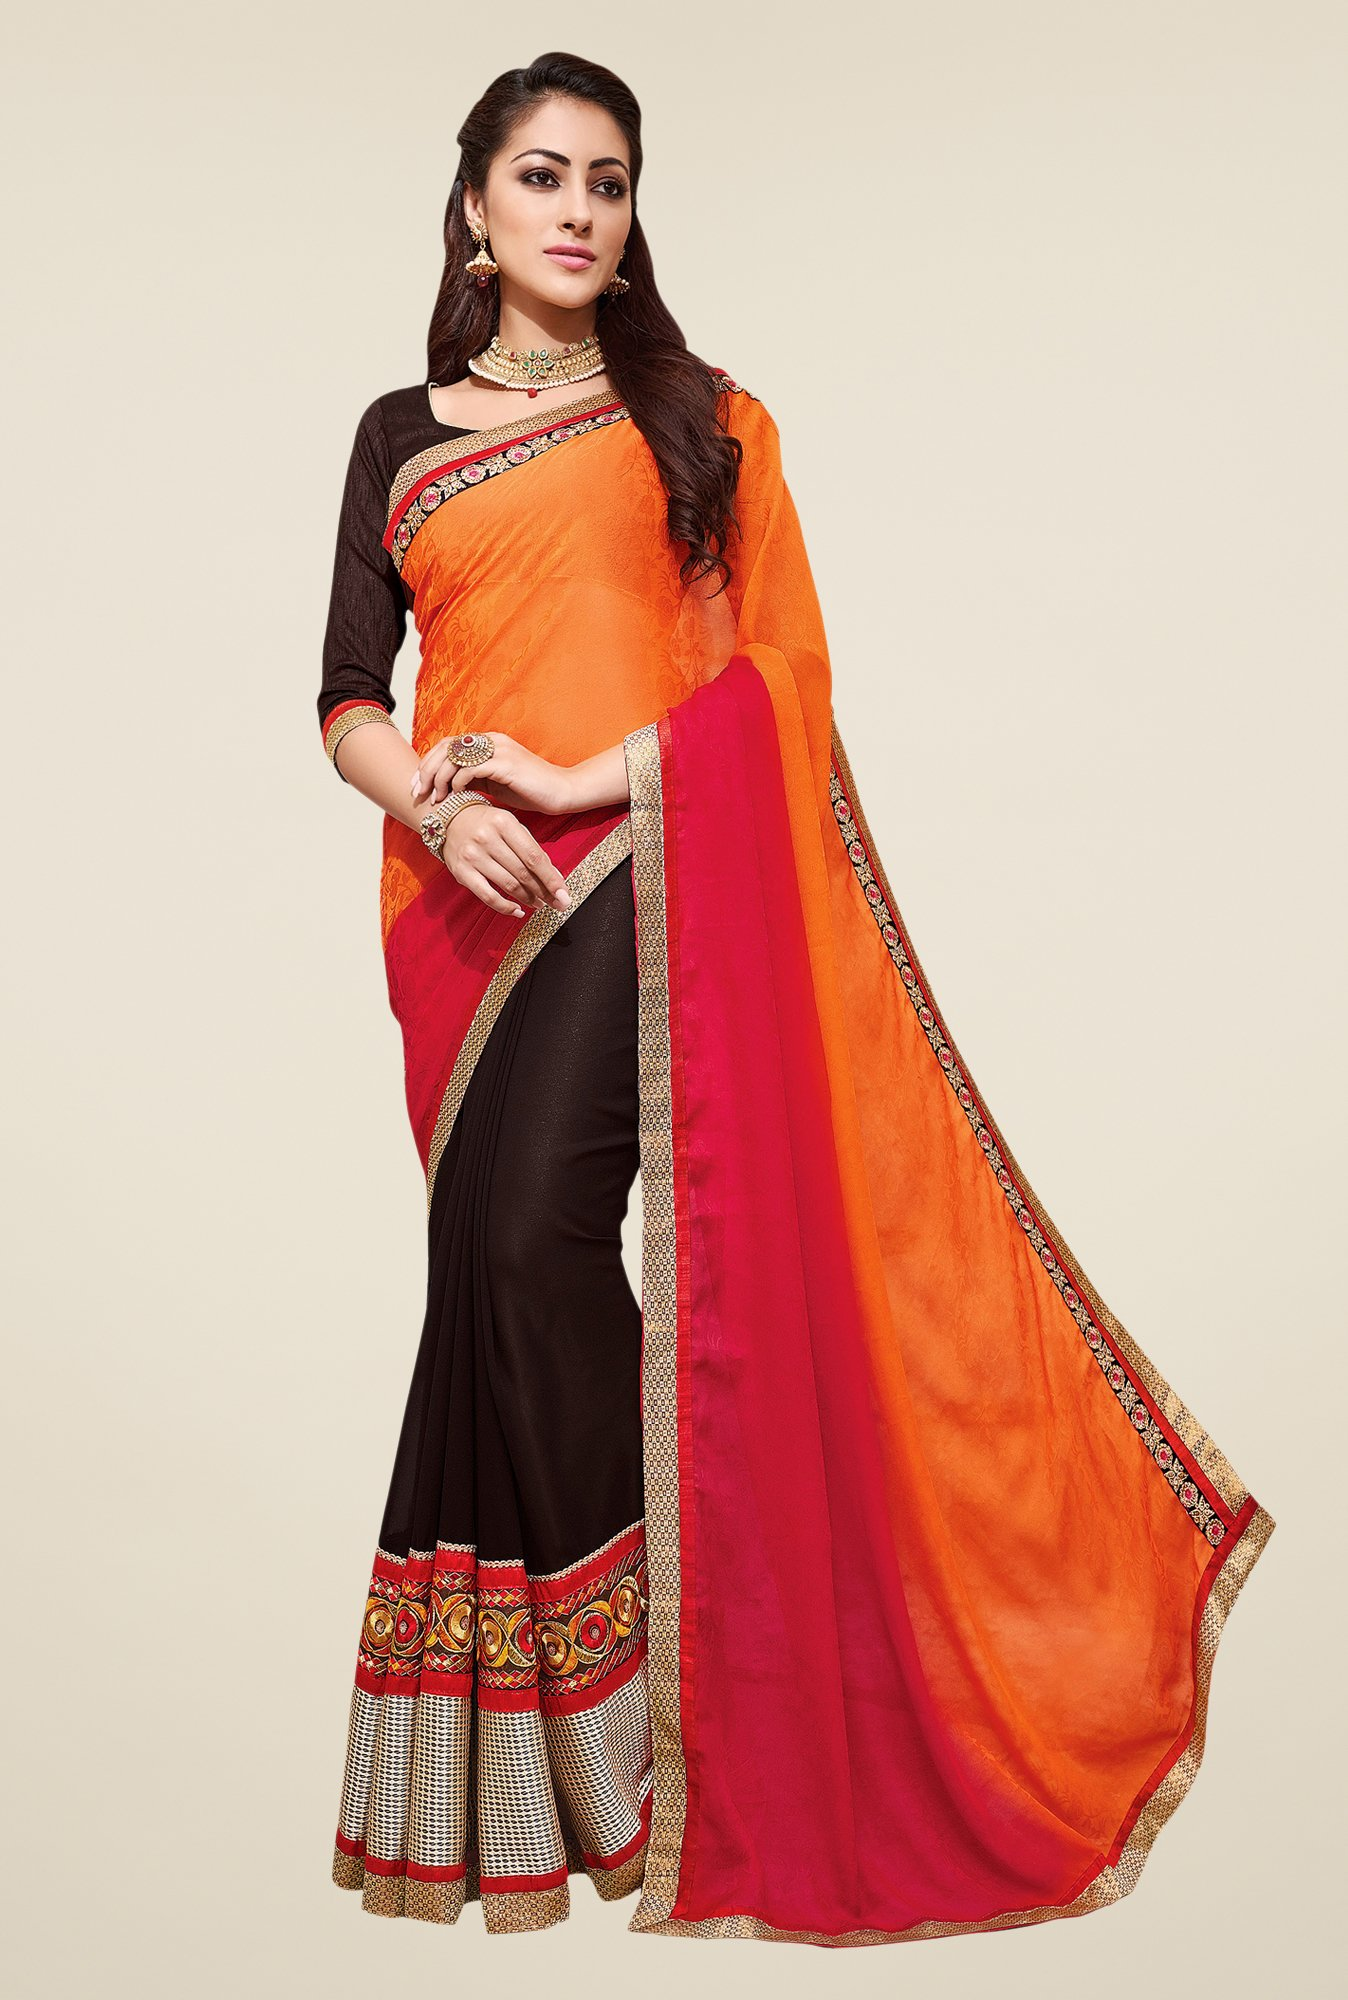 Shonaya Brown & Orange Embroidered Saree